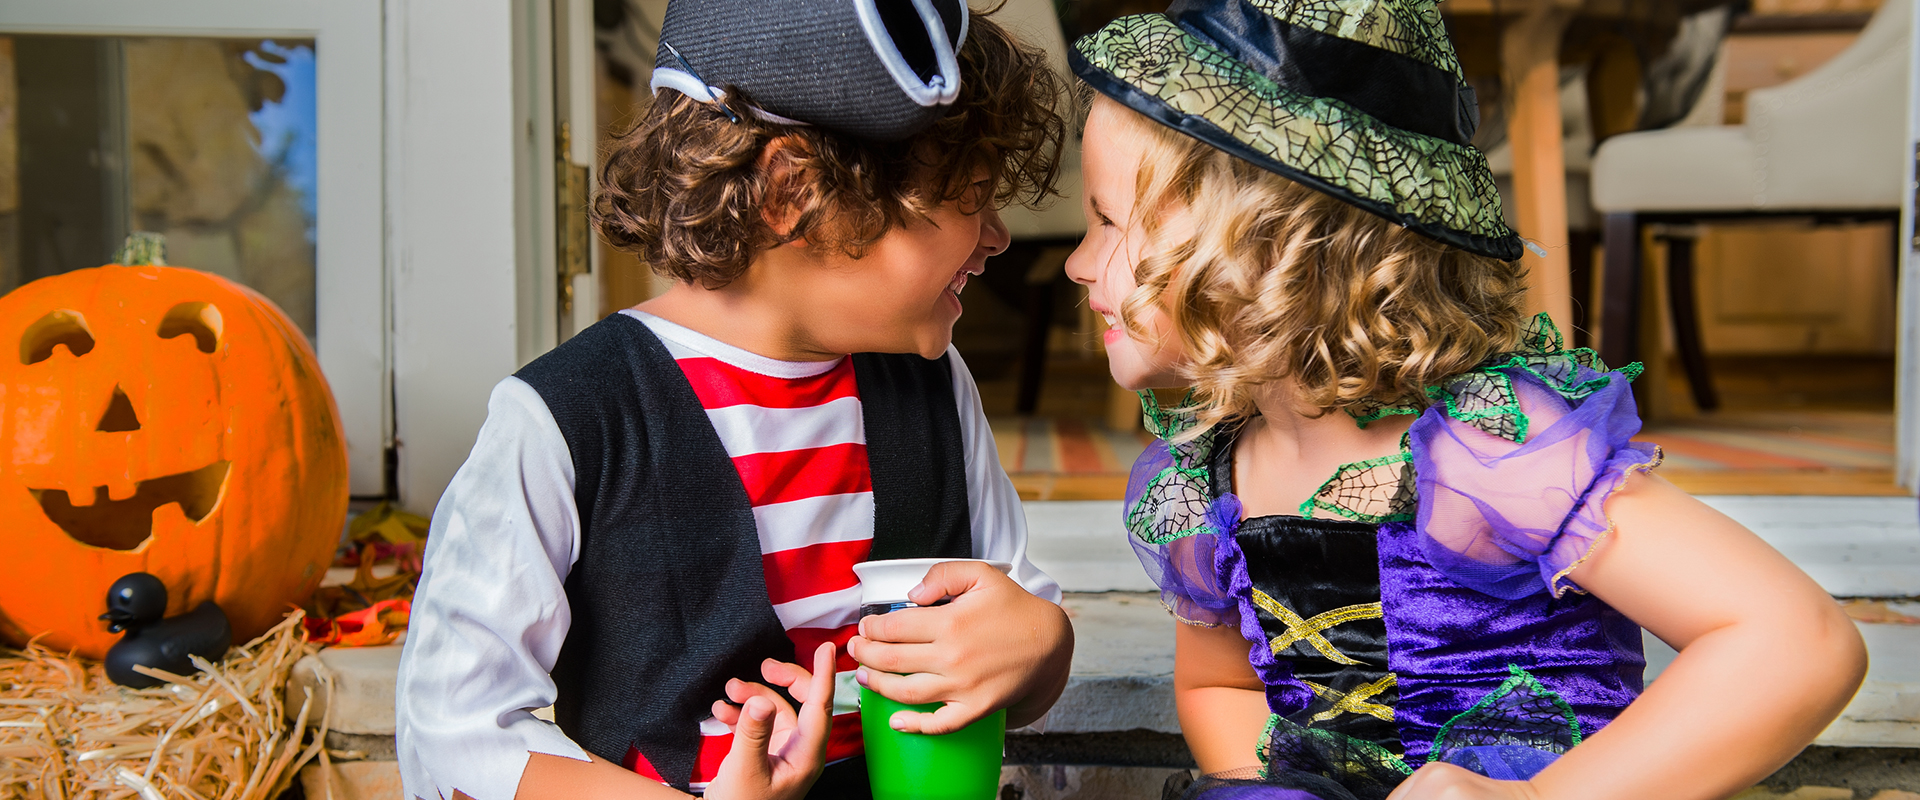 Spooky Cute Halloween Traditions to Start with Your Kids